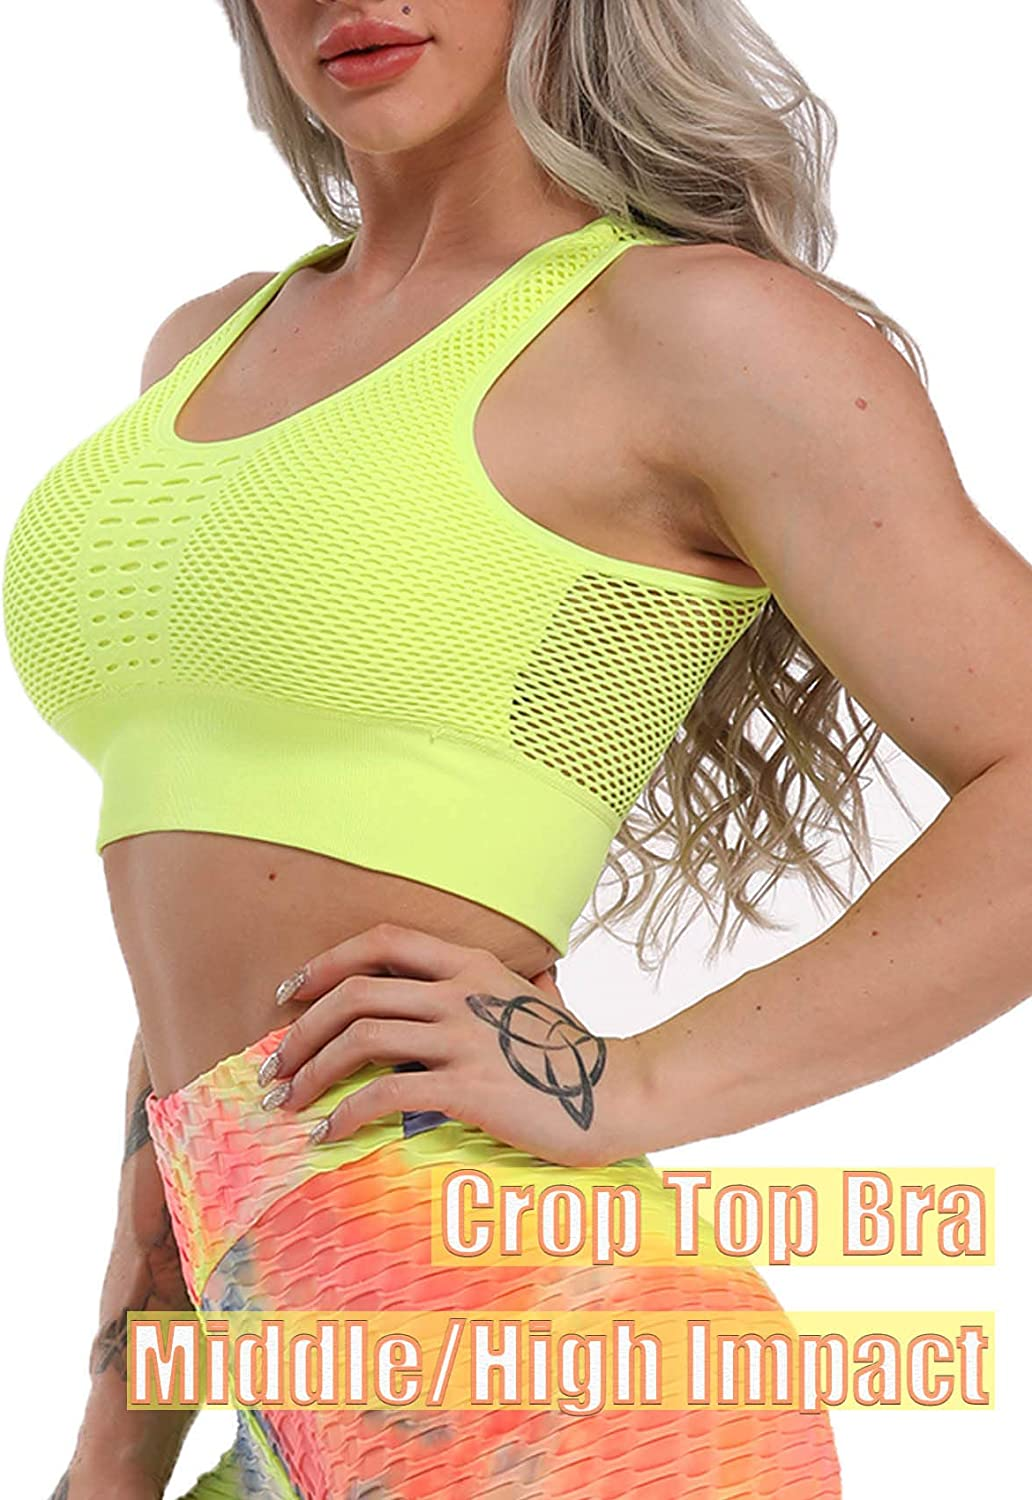 Women Seamless Comfort Sports Bra Openwork Back Sleeveless High//Middle Impact Tank Tops with Padding